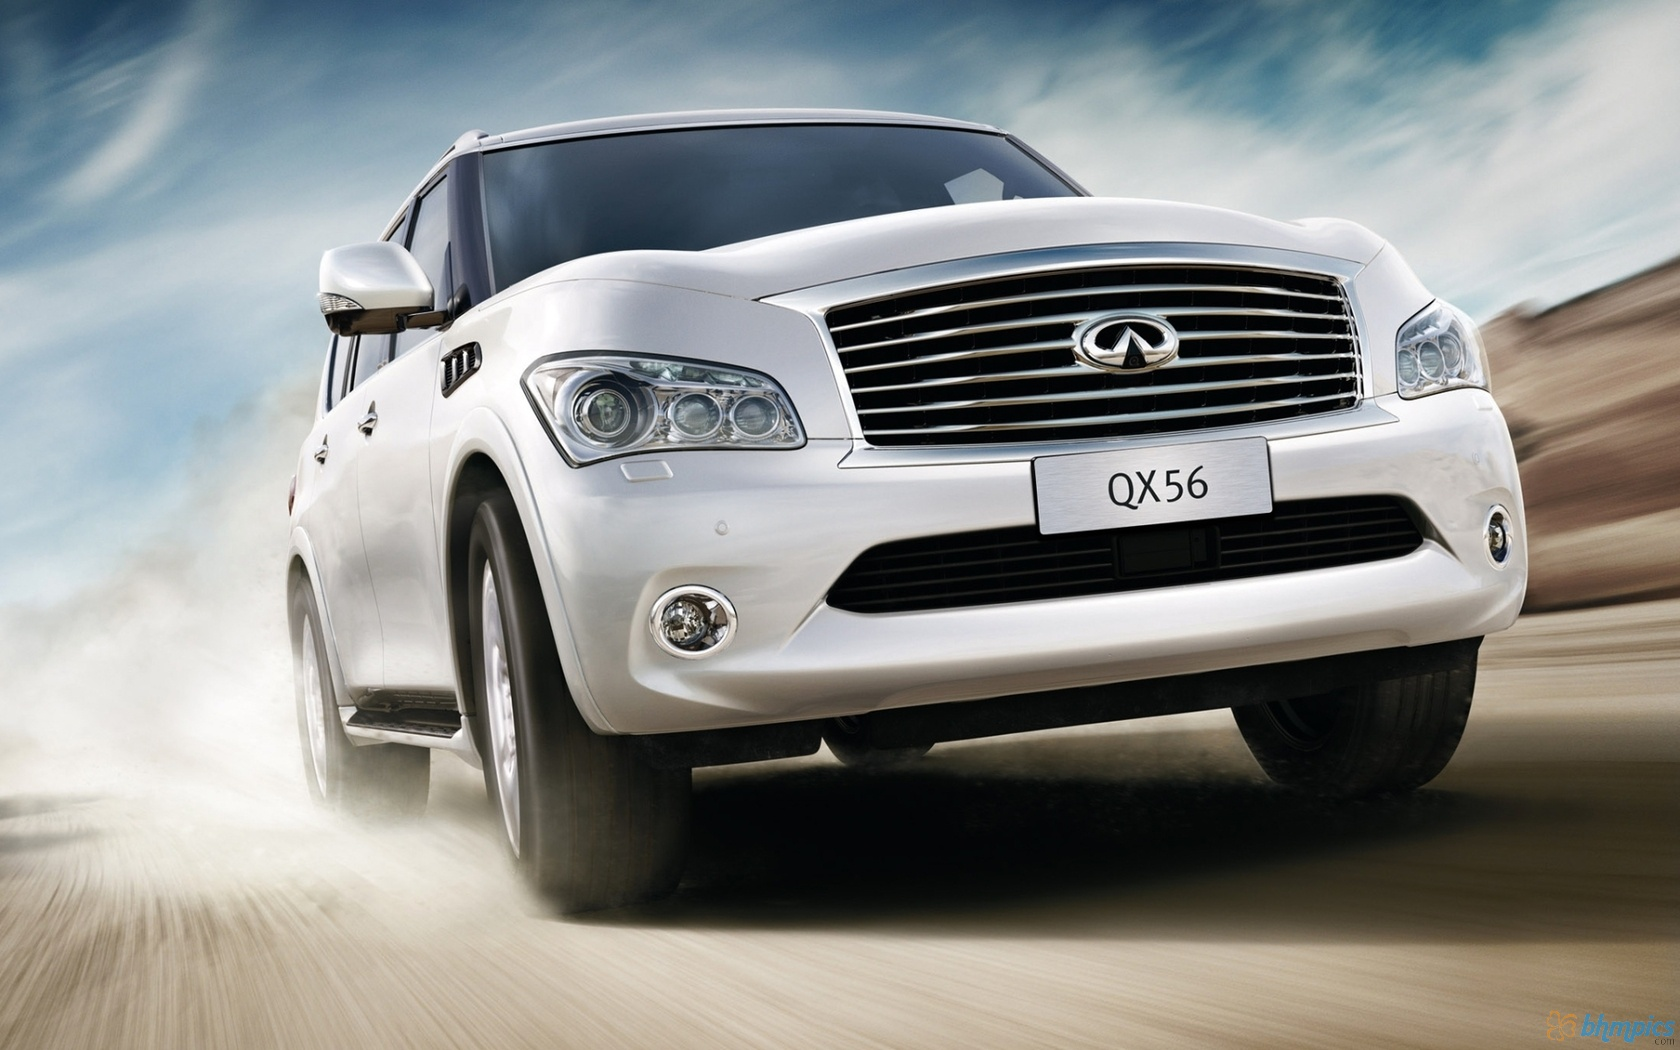 2012 Infiniti Qx56 2012 Infiniti Qx56 Wallpapers